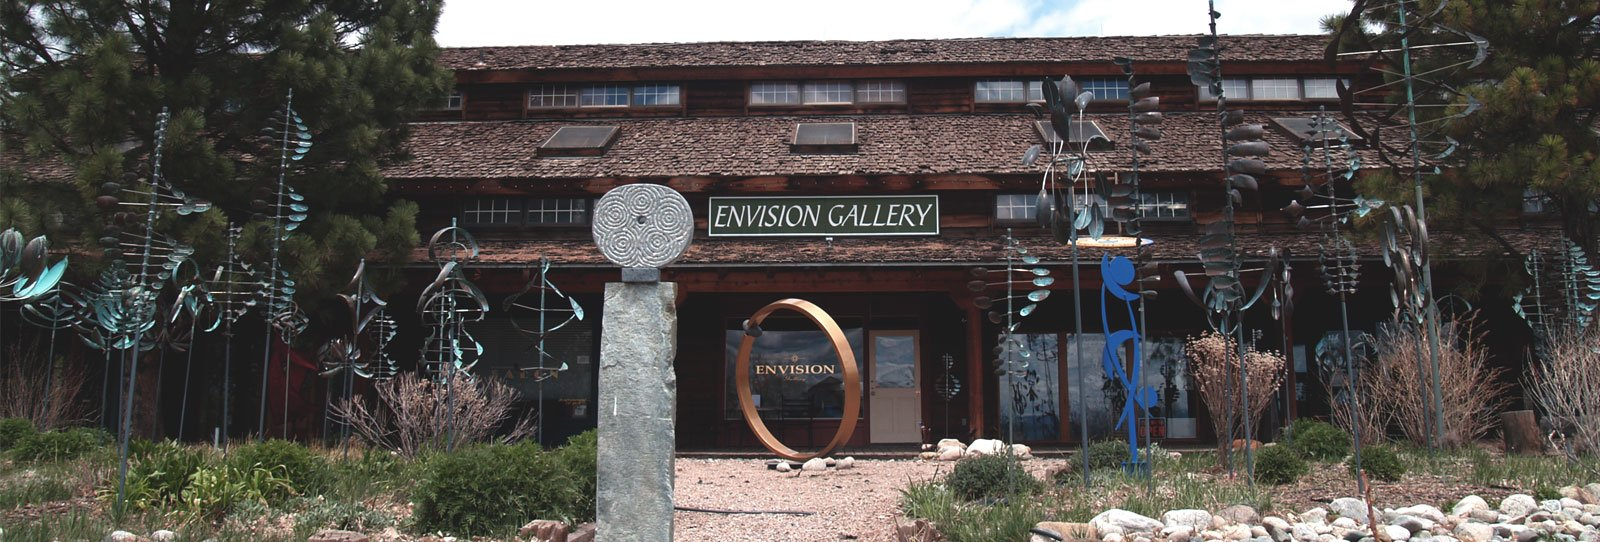 ‪Envision Gallery‬